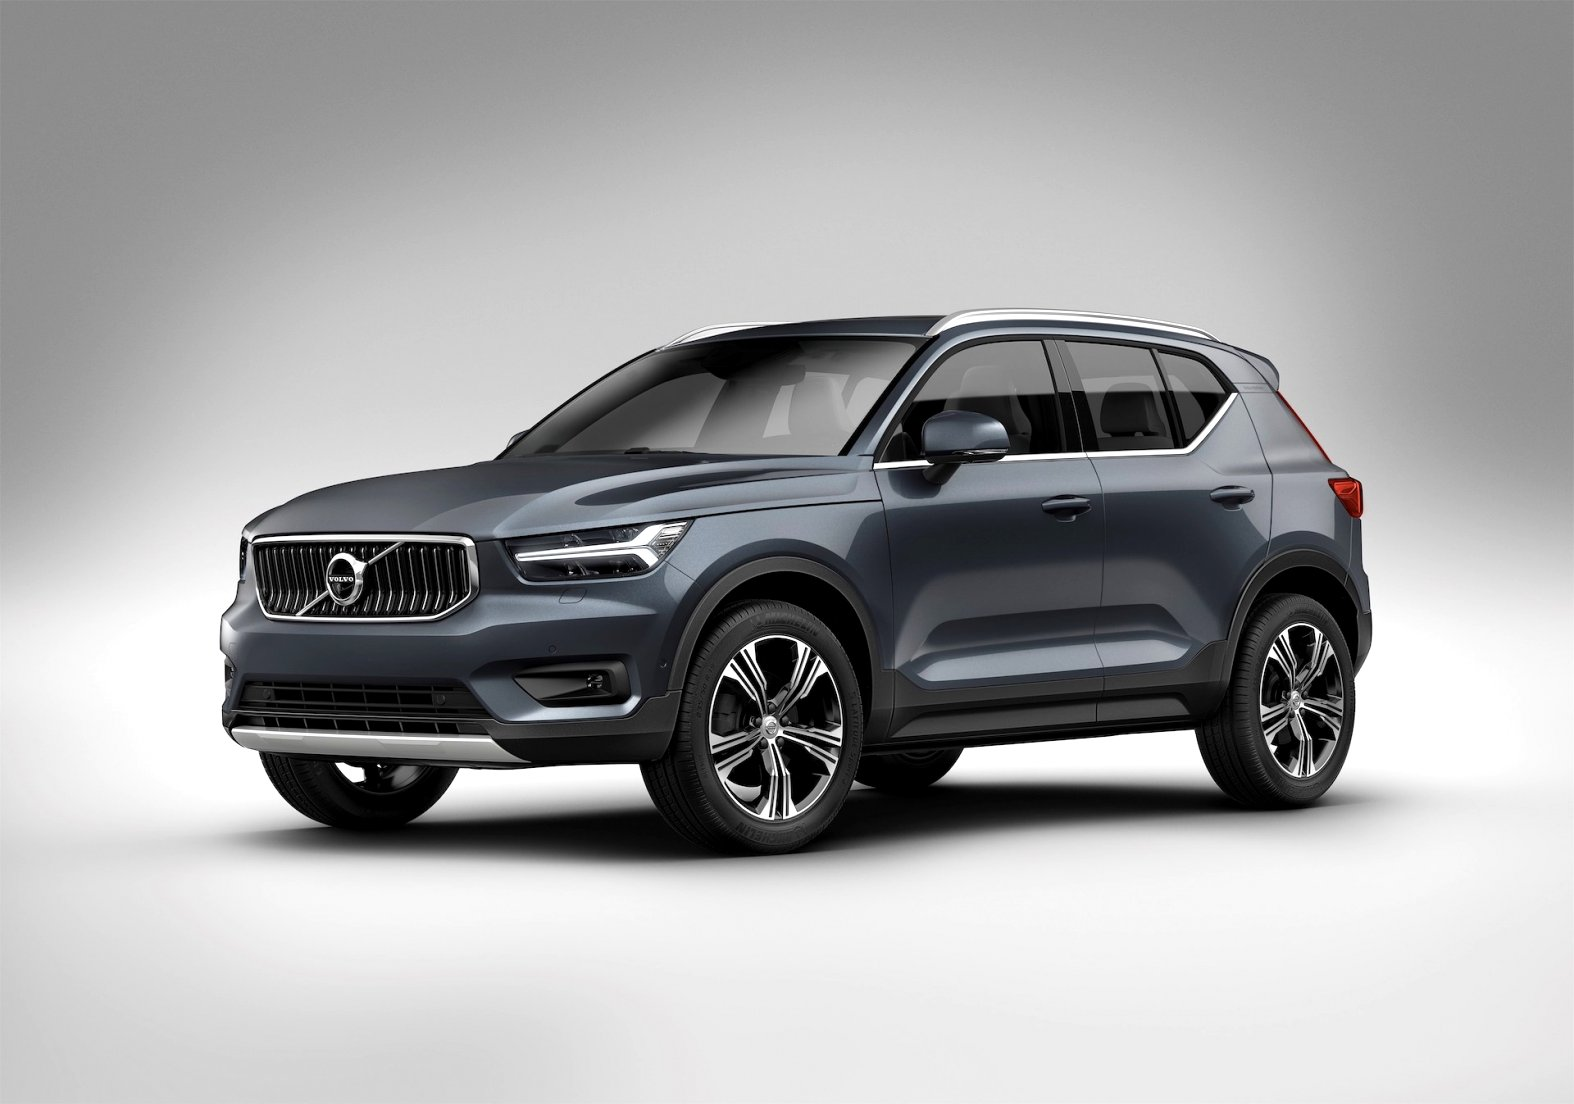 2020 volvo mpg Price and Review